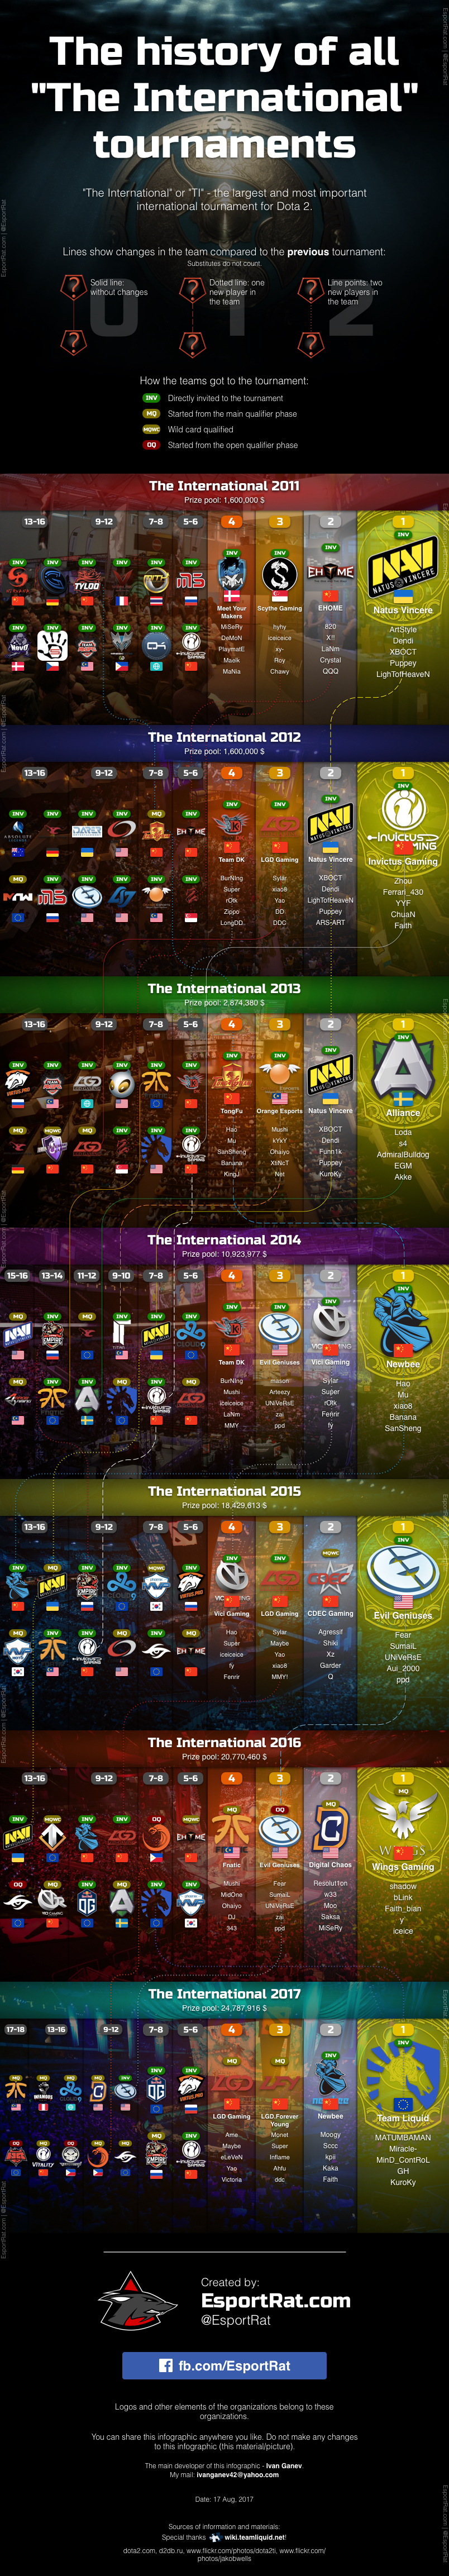 """Infographic - The history of all """"The International"""" tournaments"""